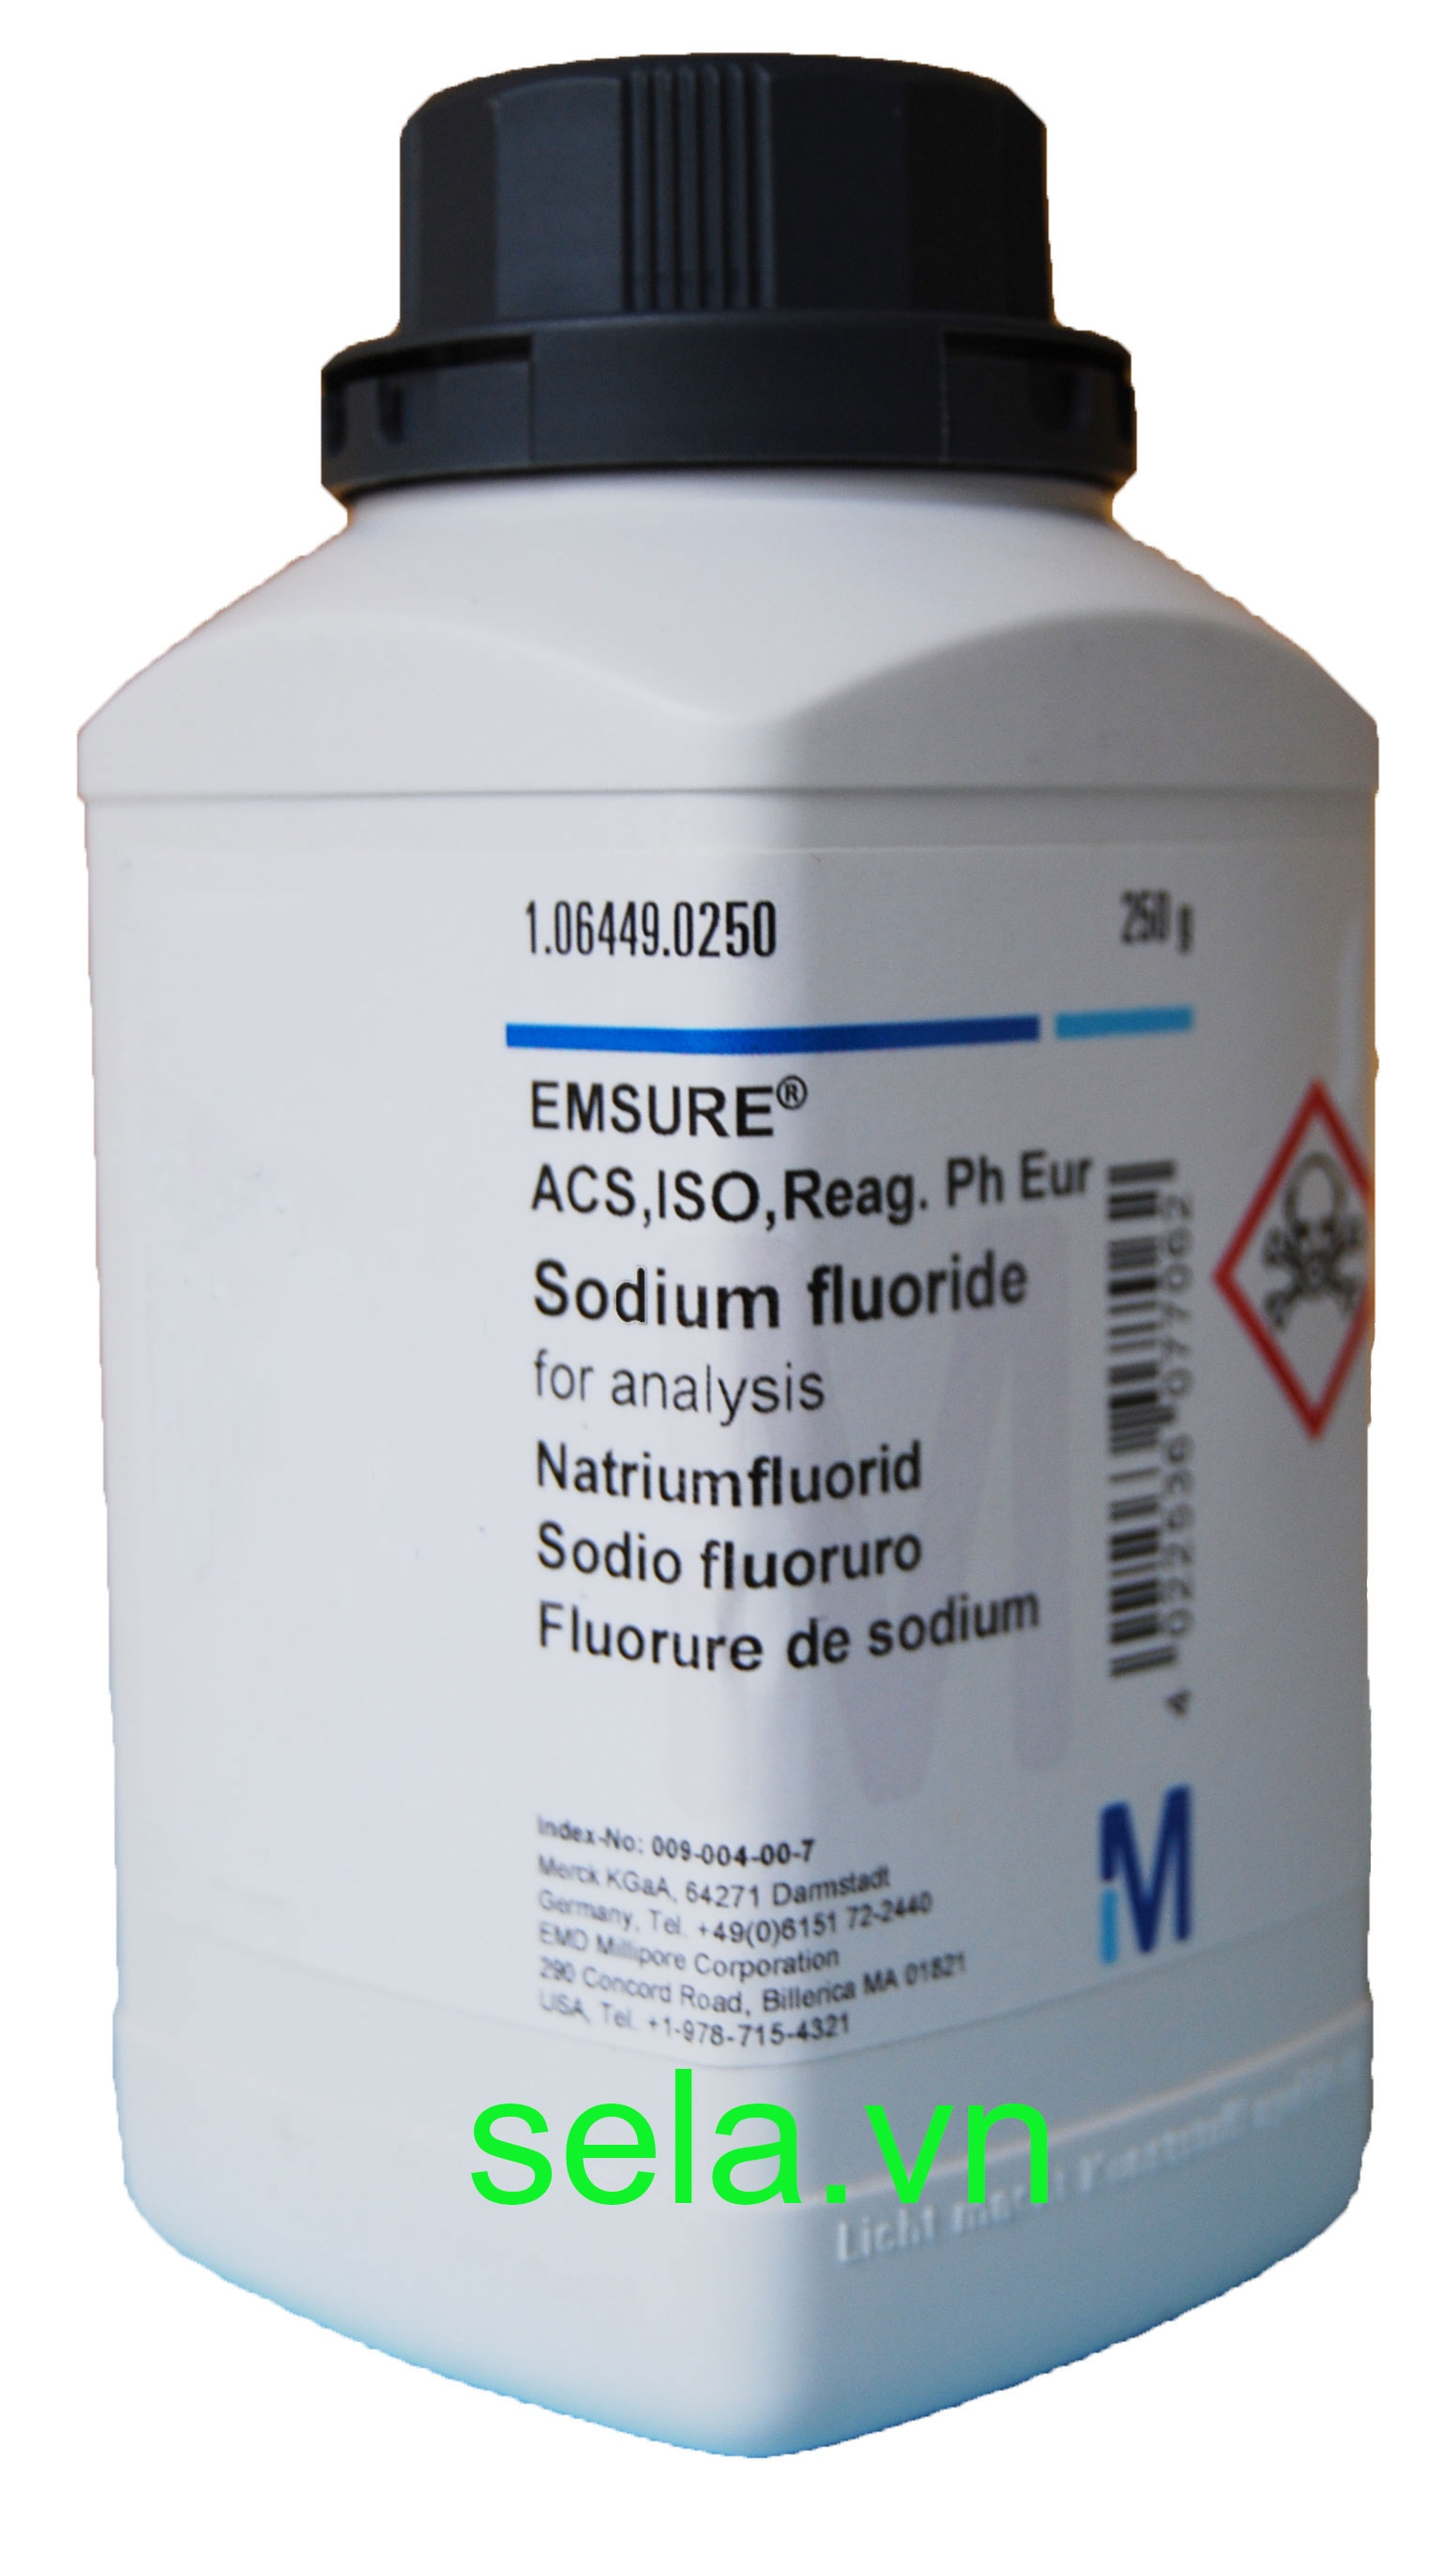 Sodium fluoride for analysis EMSURE® ACS,ISO,Reag. Ph Eur